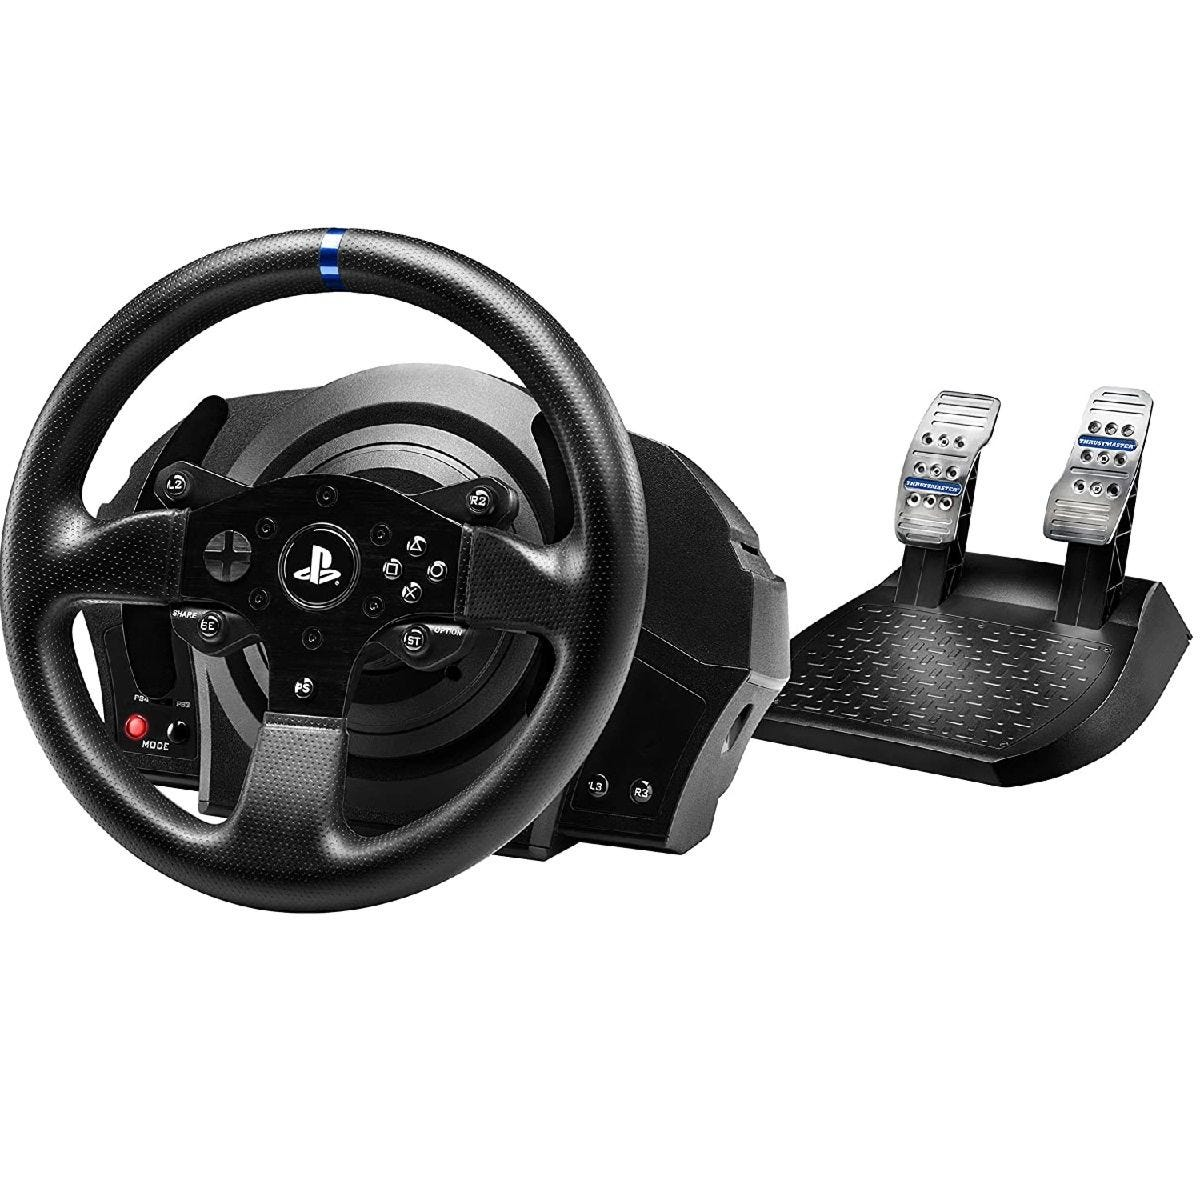 Thrustmaster T300 RS Racing Wheel for PS4/PS3/PC 1080